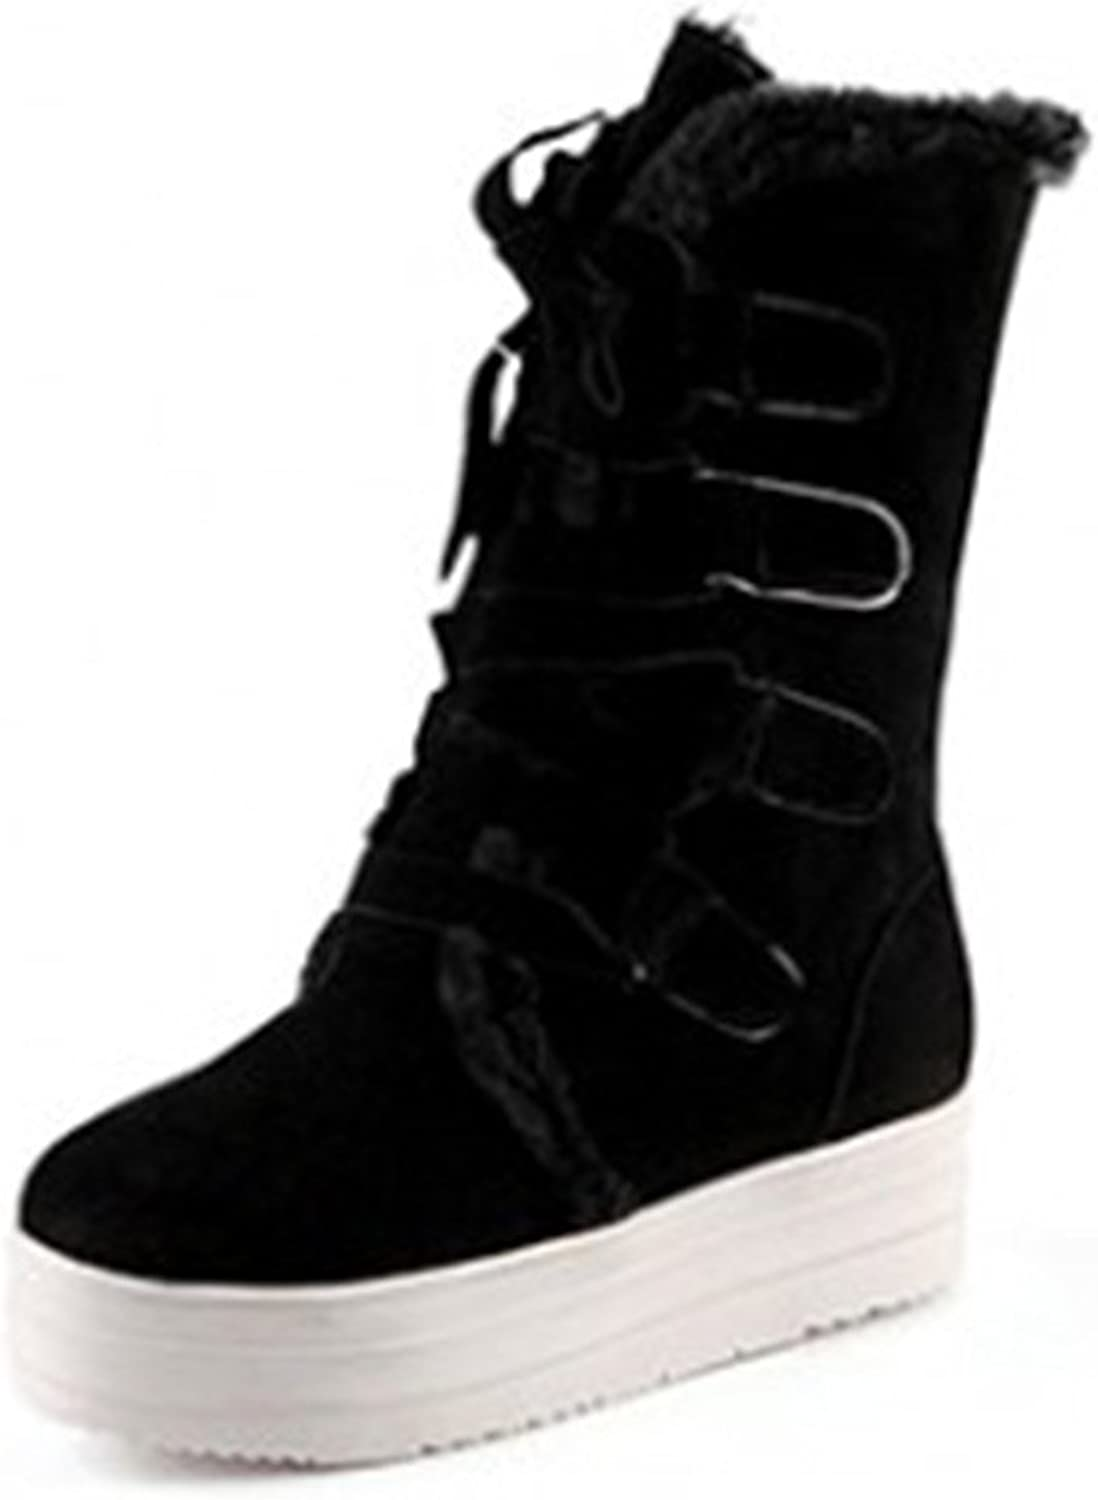 SFNLD Women's Warm Fur Lined Winter shoes Snow Boots